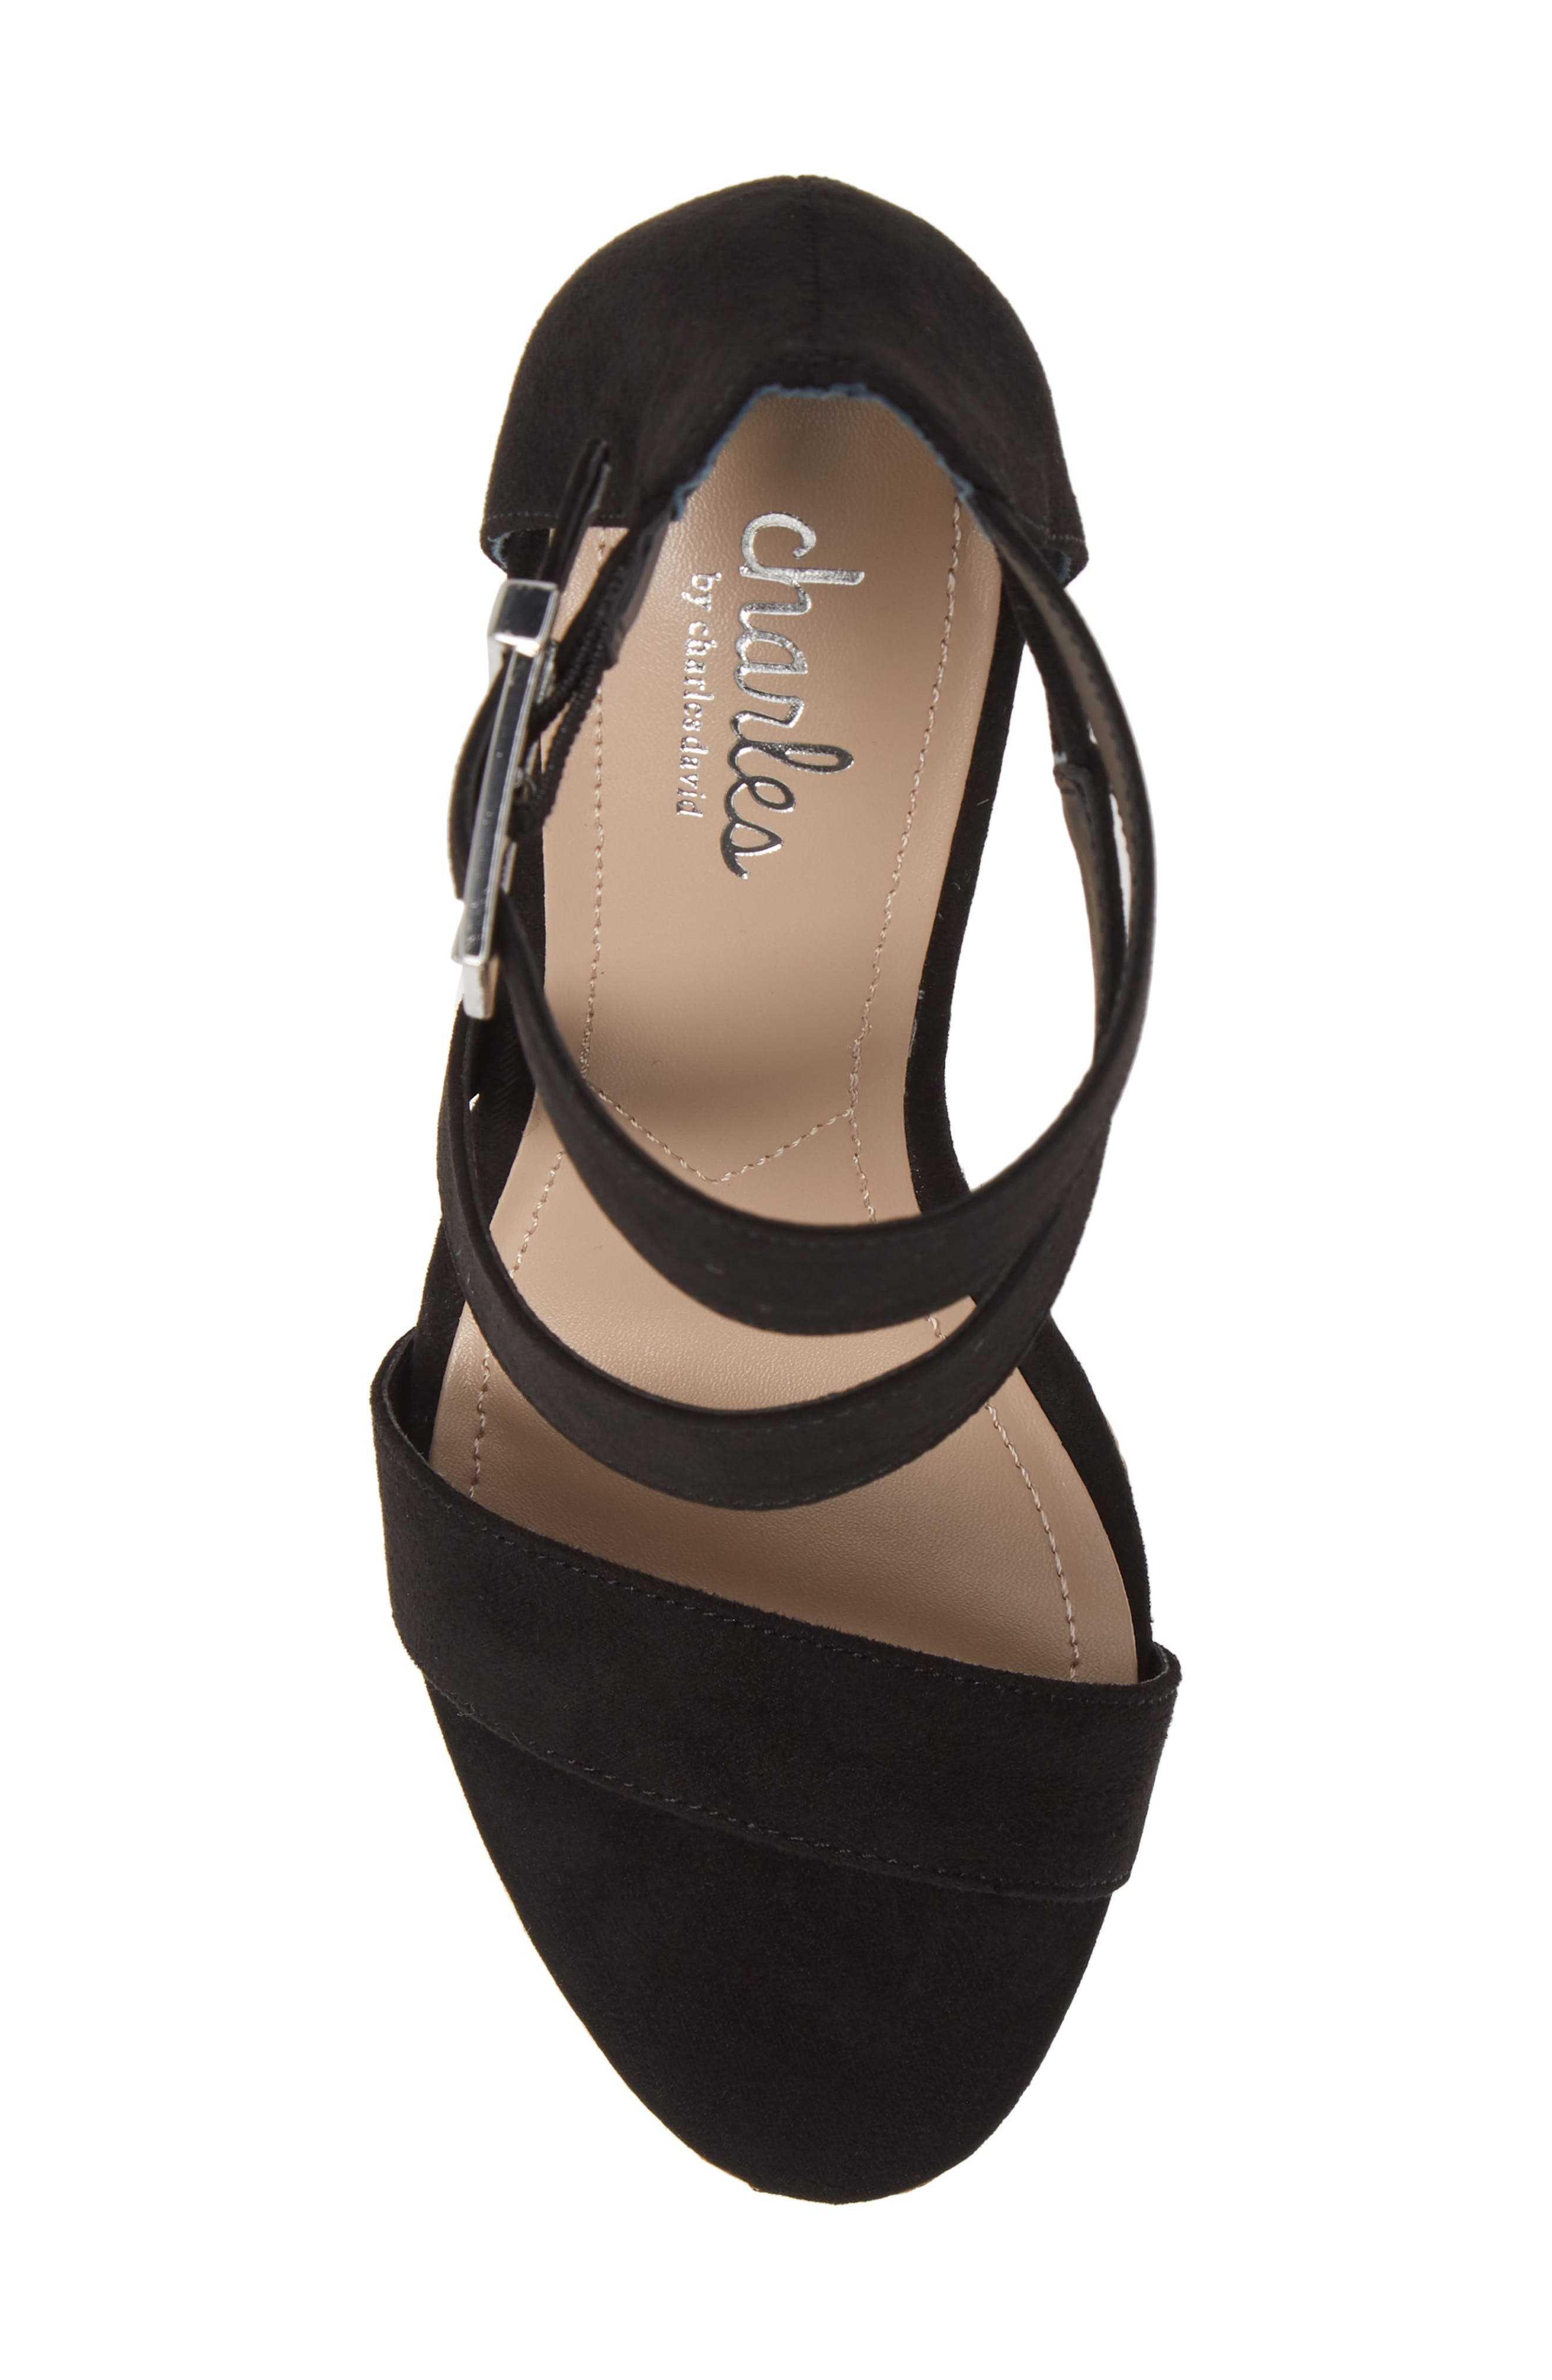 CHARLES BY CHARLES DAVID, Adrielle Asymmetrical Platform Wedge Sandal, Alternate thumbnail 5, color, BLACK FABRIC